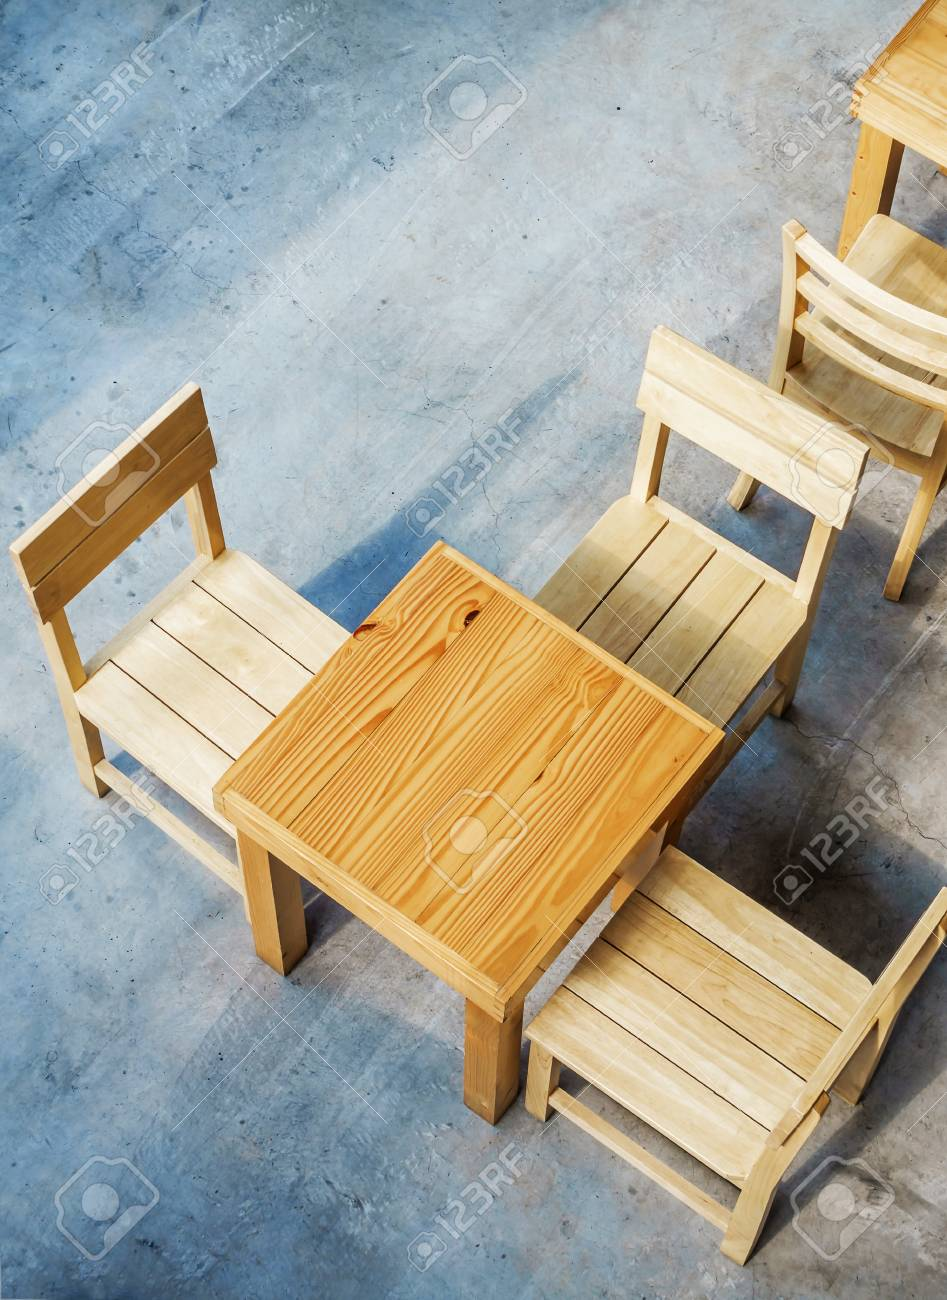 Top View Of Wooden Tables And Chairs In Coffee Shop Stock Photo Picture And Royalty Free Image Image 75878290